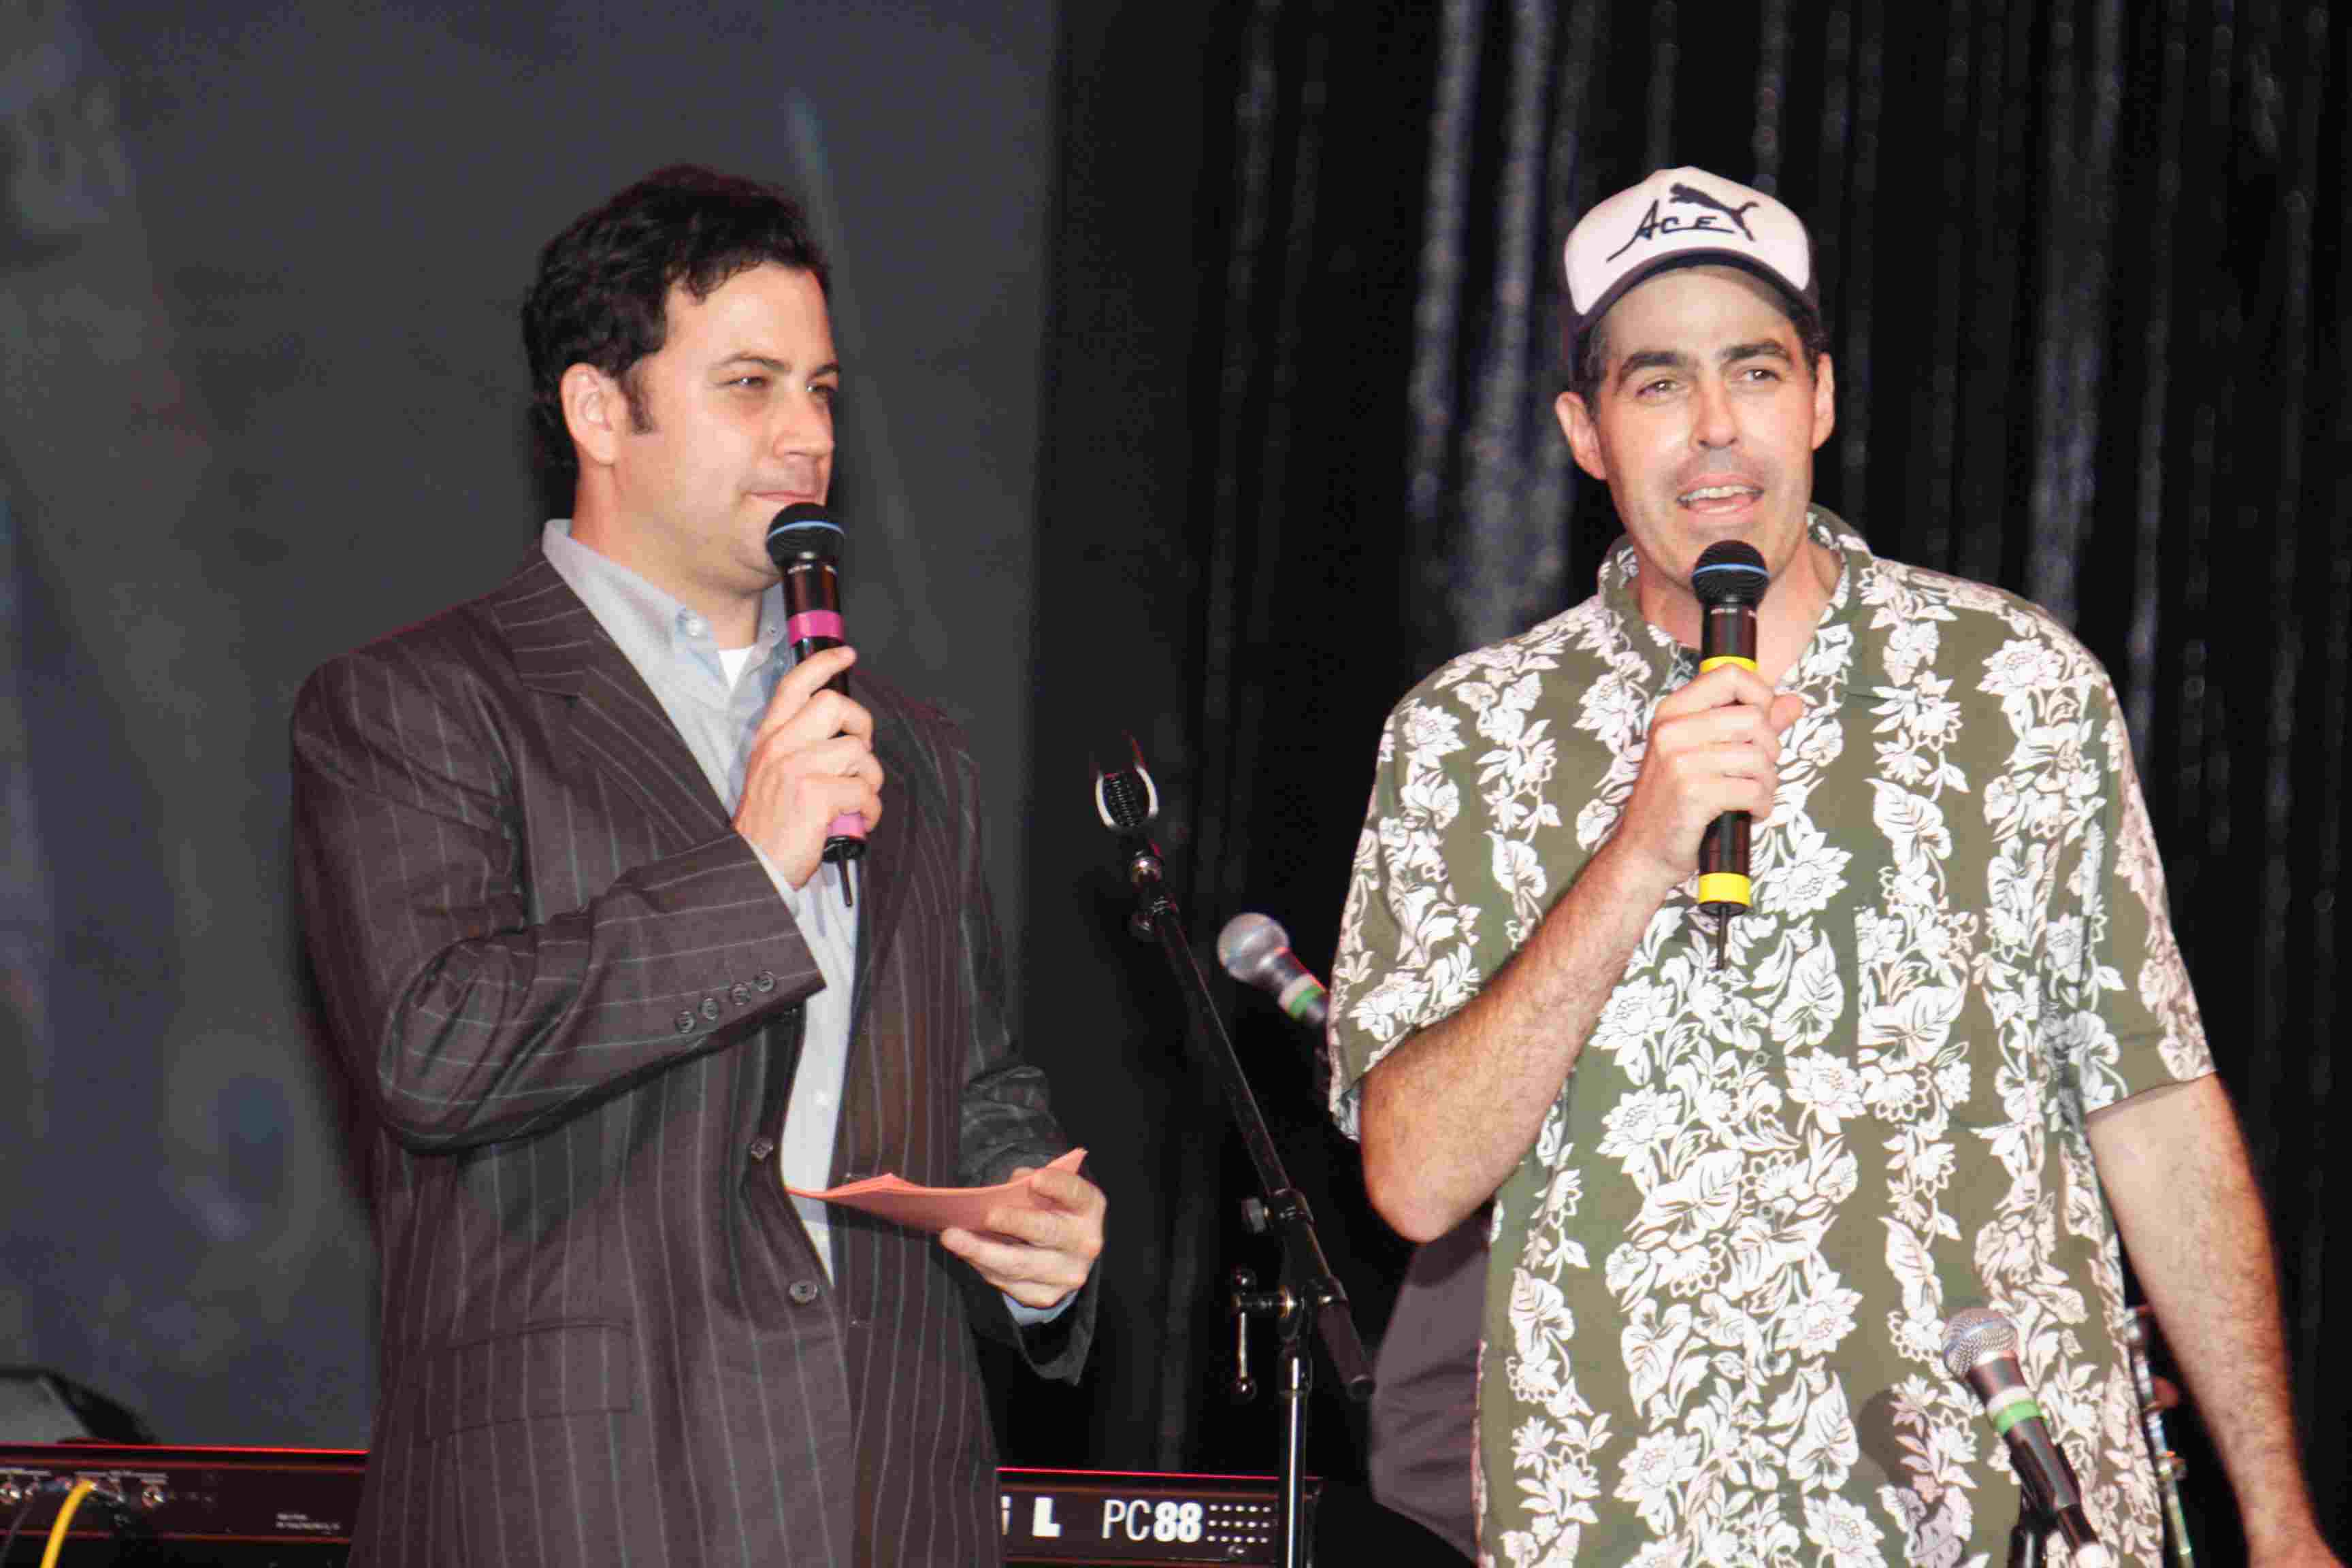 Jimmy Kimmel and Adam Carolla at the Feast of San Gennaro in 2005